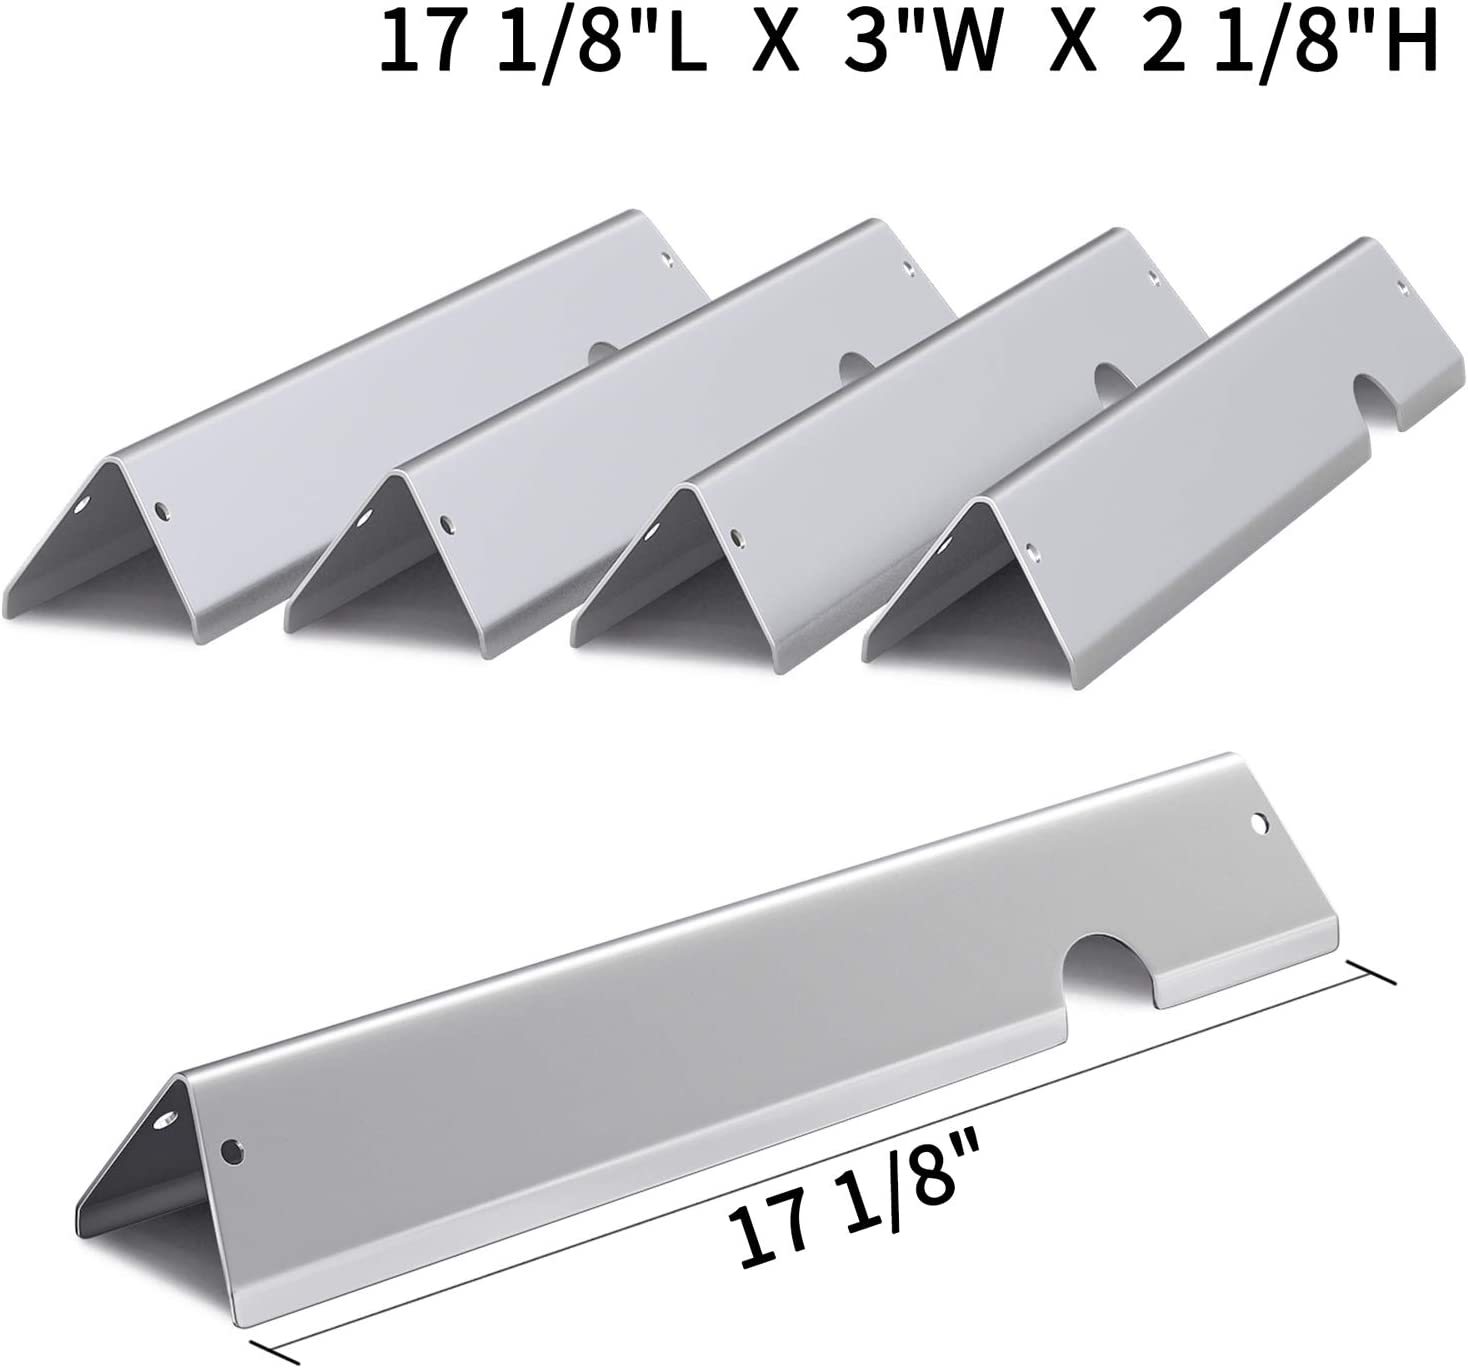 "SHINESTAR 17"" 66032/66795 Flavorizer Bars for Weber Genesis II 300 Series Gas Grill, Heavy Duty Stainless Steel, 5-Pack"